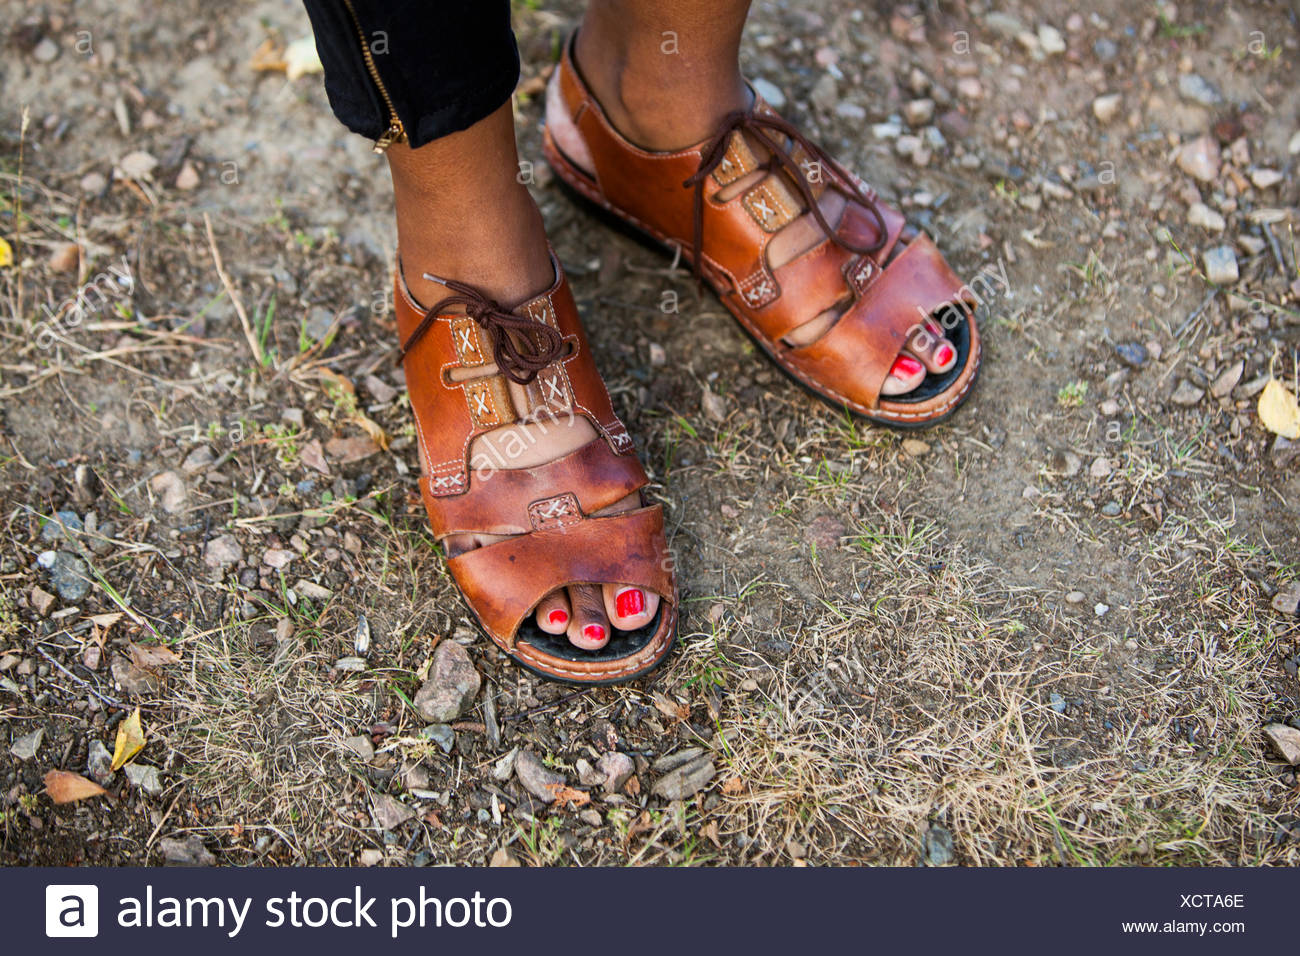 Low section of woman standing on dirt land - Stock Image